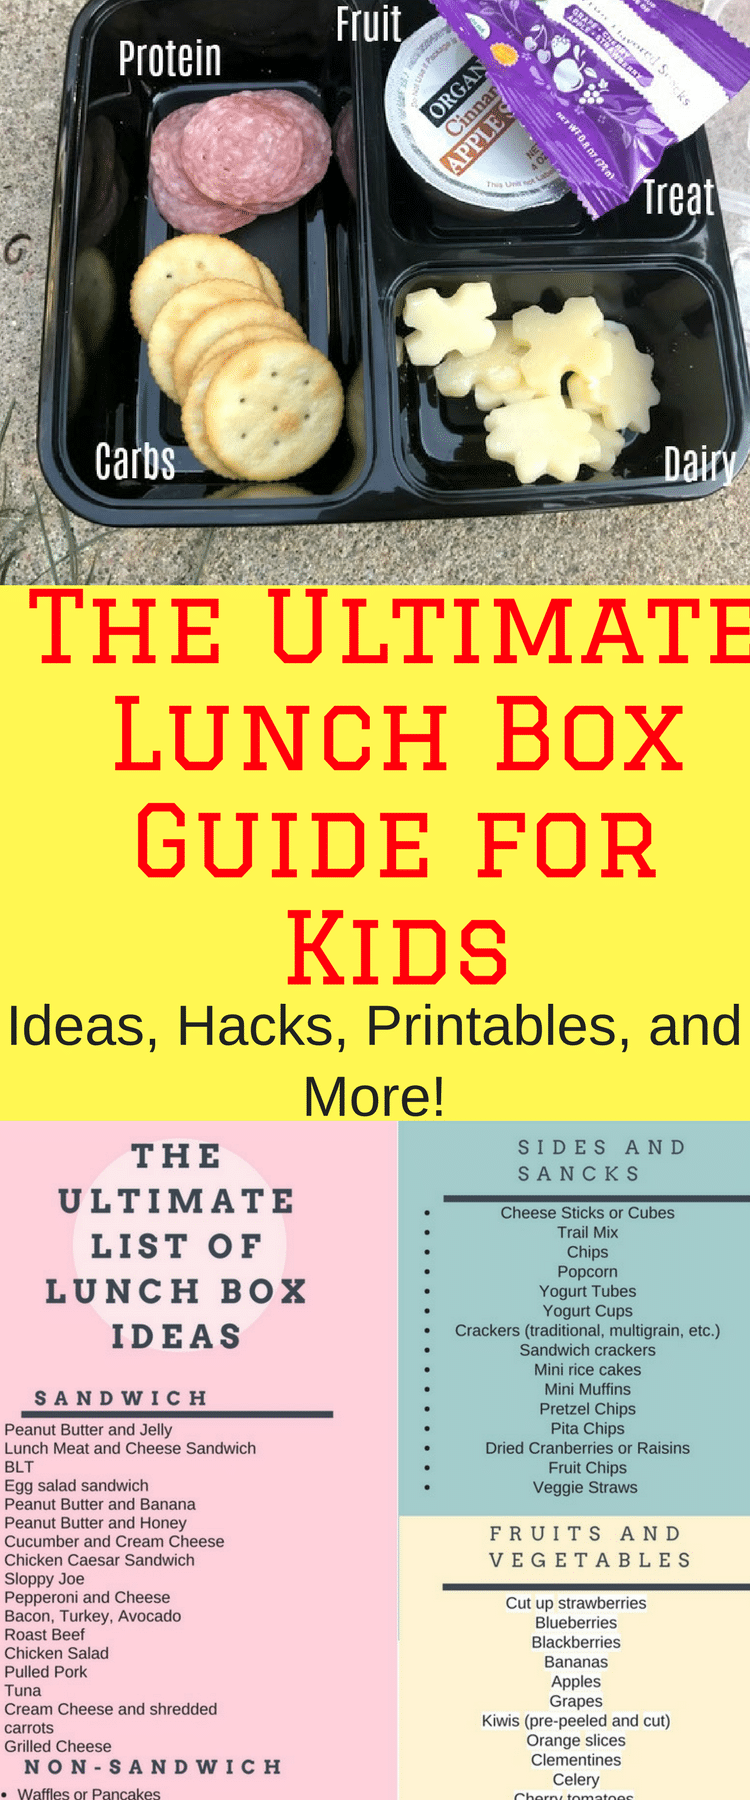 Lunch box ideas / Lunch Box Ideas for Kids / School Lunch / Lunch Ideas / Lunch Ideas for Kids / Kid Lunch Ideas / non sandwich lunch ideas / sandwich ideas / kid lunches